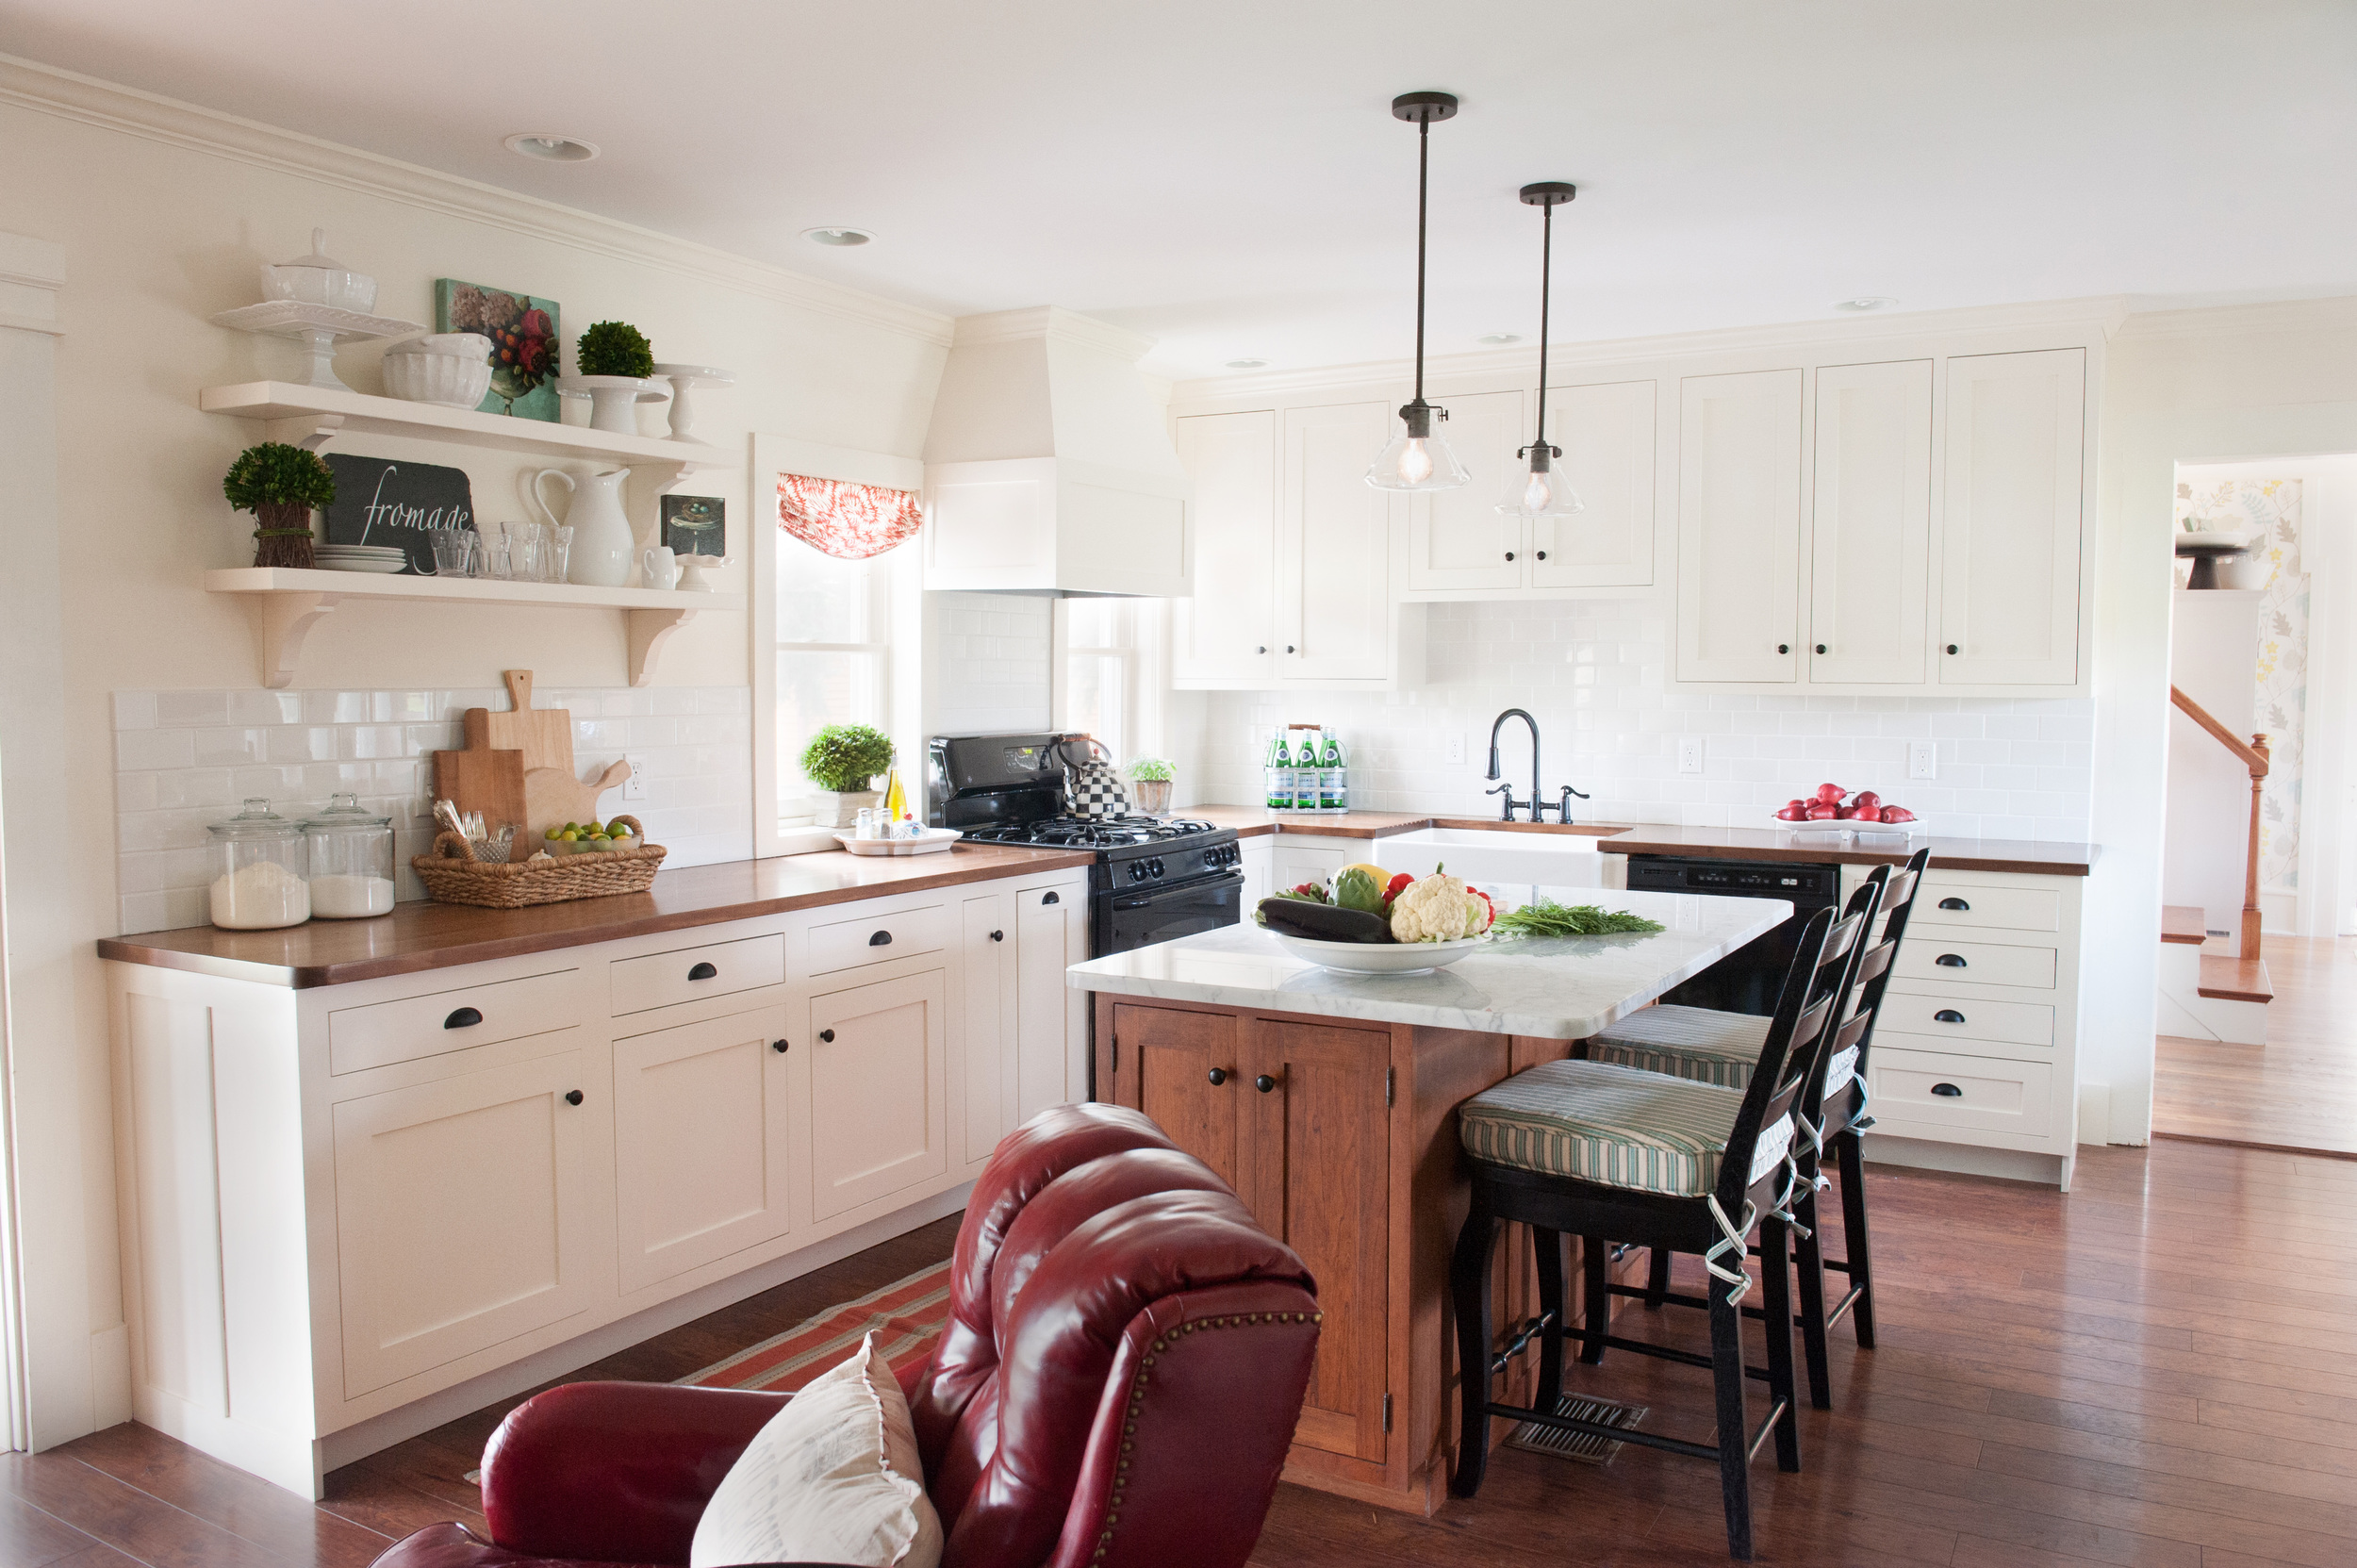 open_kitchen_with_island_and_chairs